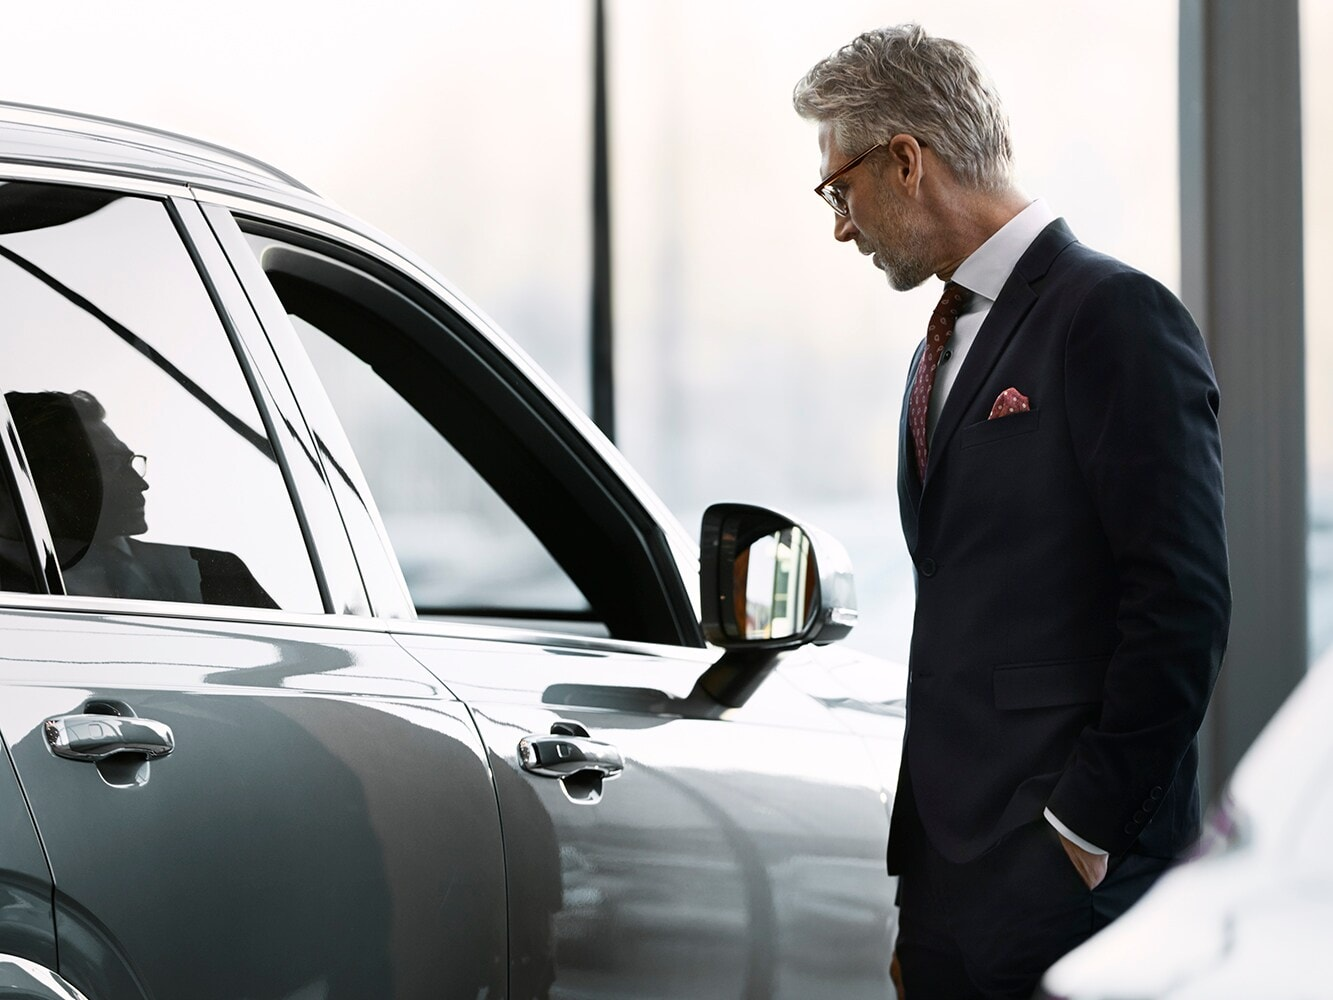 A dealer inspects the new Volvo XC60 in a showroom